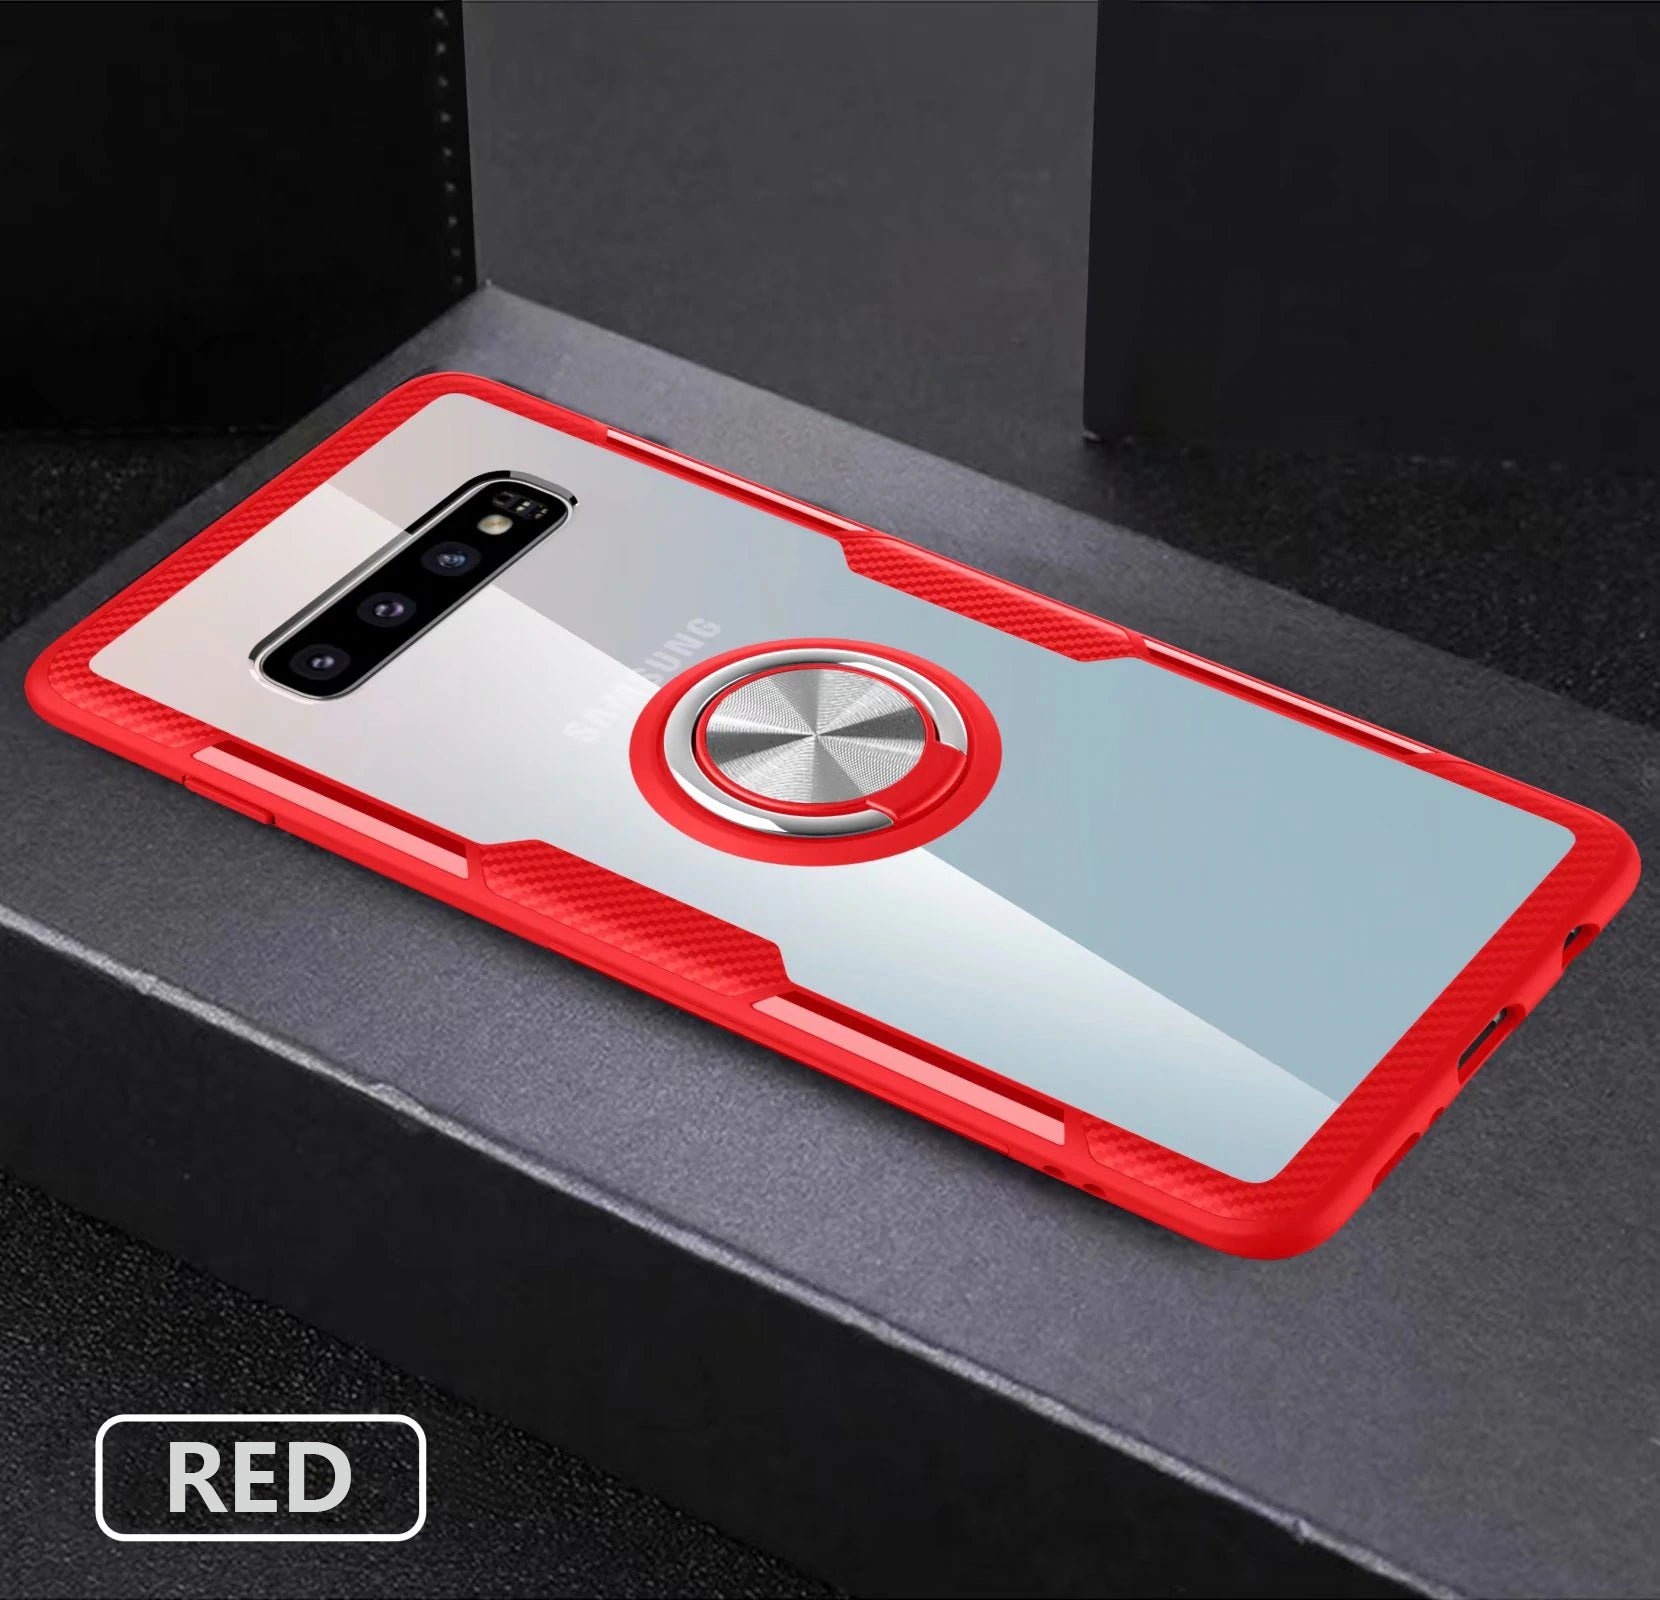 2020 Ultra Thin 4 in 1 Premium Nanotech Impact Case For iPhone